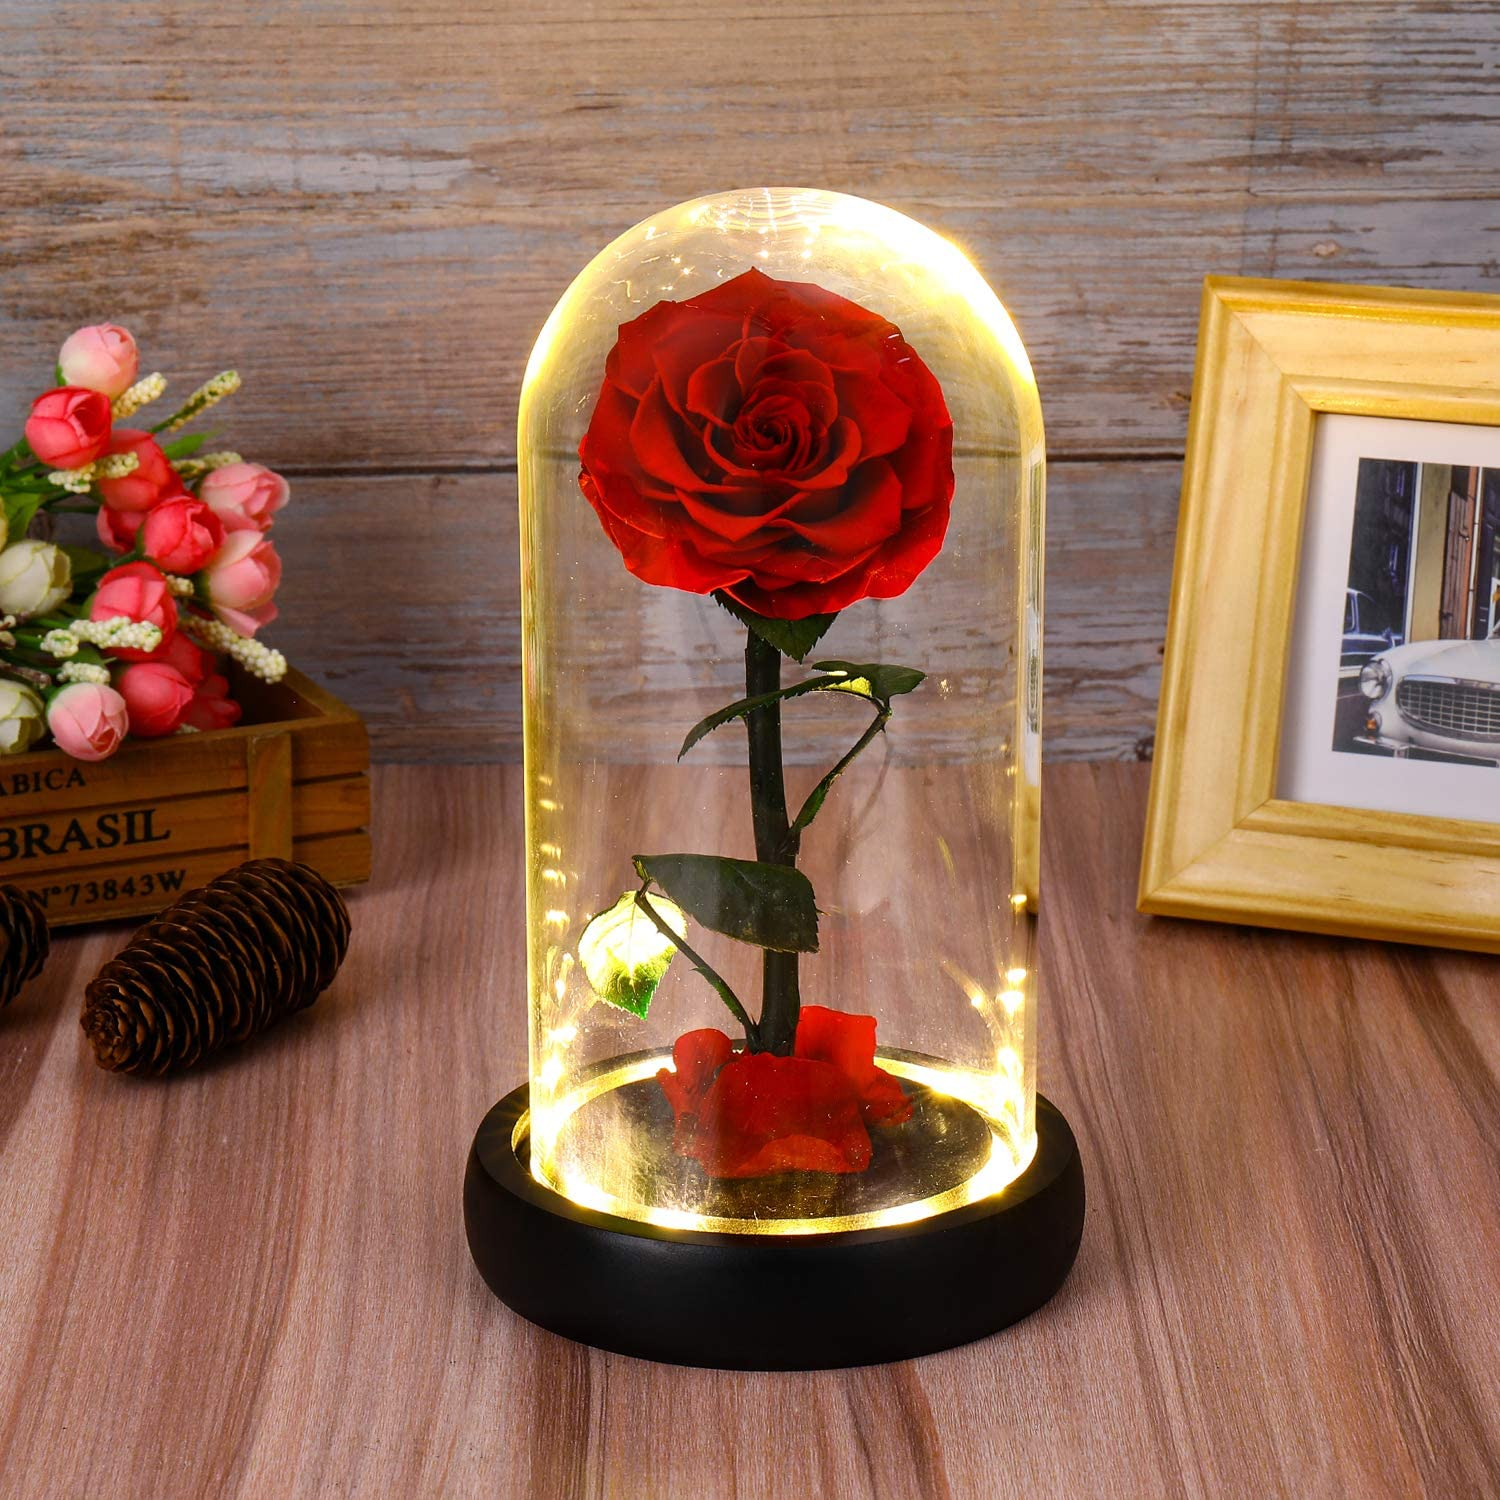 Tiaronics Beauty and The Beast Rose, Enchanted Rose Preserved Real Rose in Glass Dome with Gift Package Best Gifts for Her, Anniversary, Wedding, (Preserved Real Rose with Light)